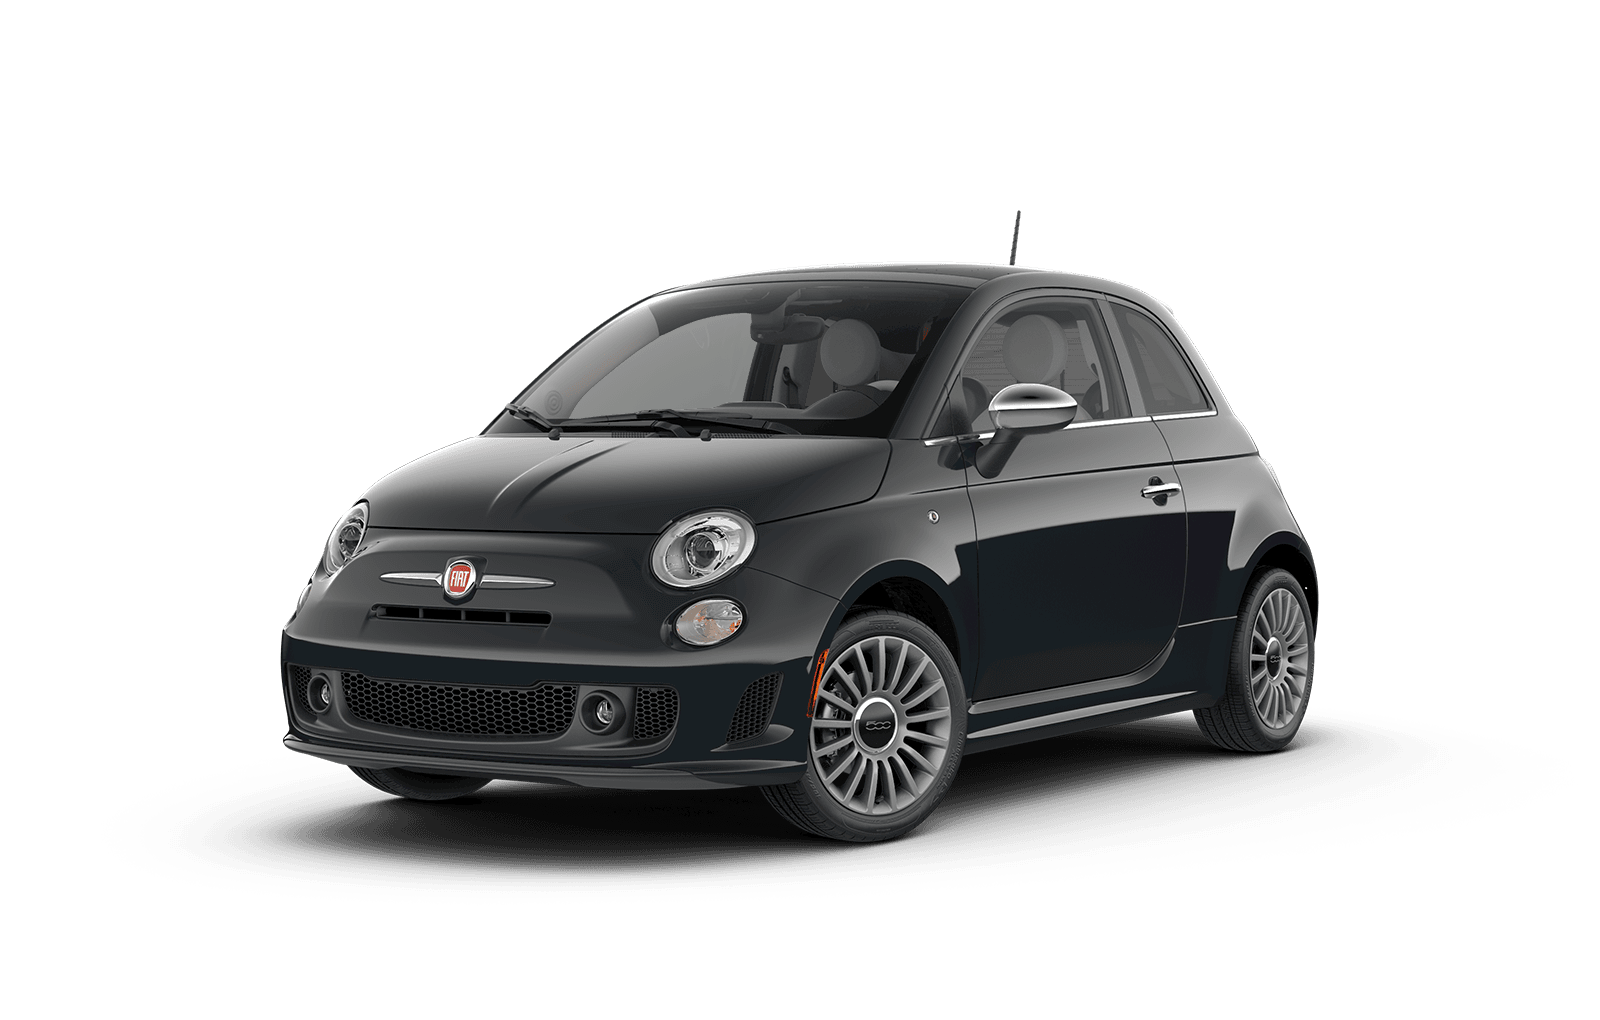 2019 FIAT 500 Full View in Blue Grey with Wheels